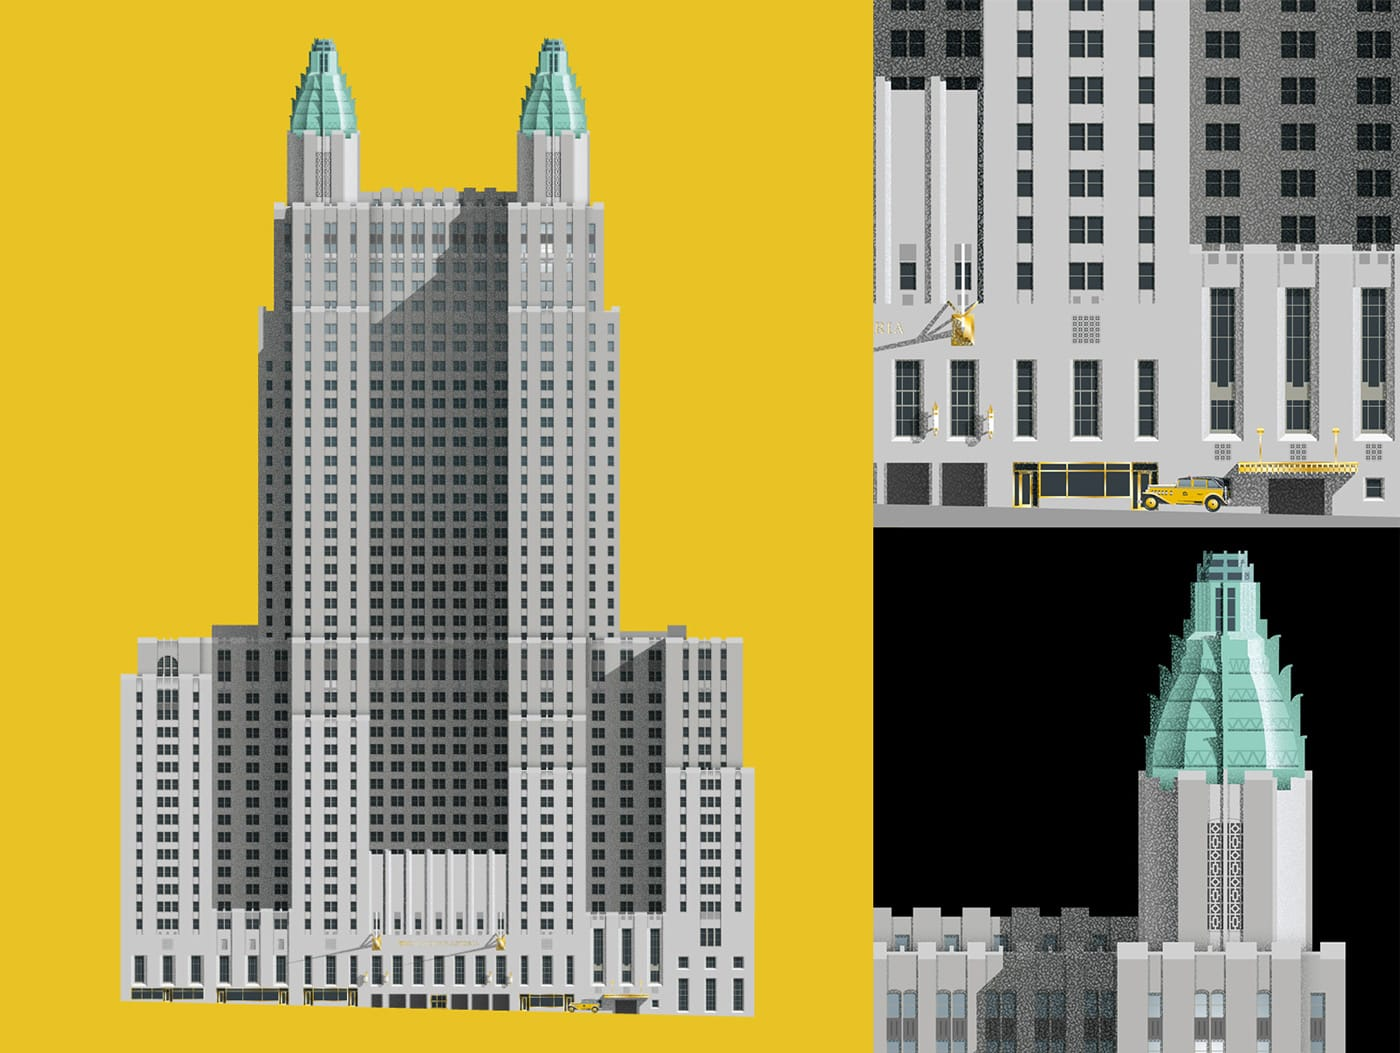 New York Architecture illustrations